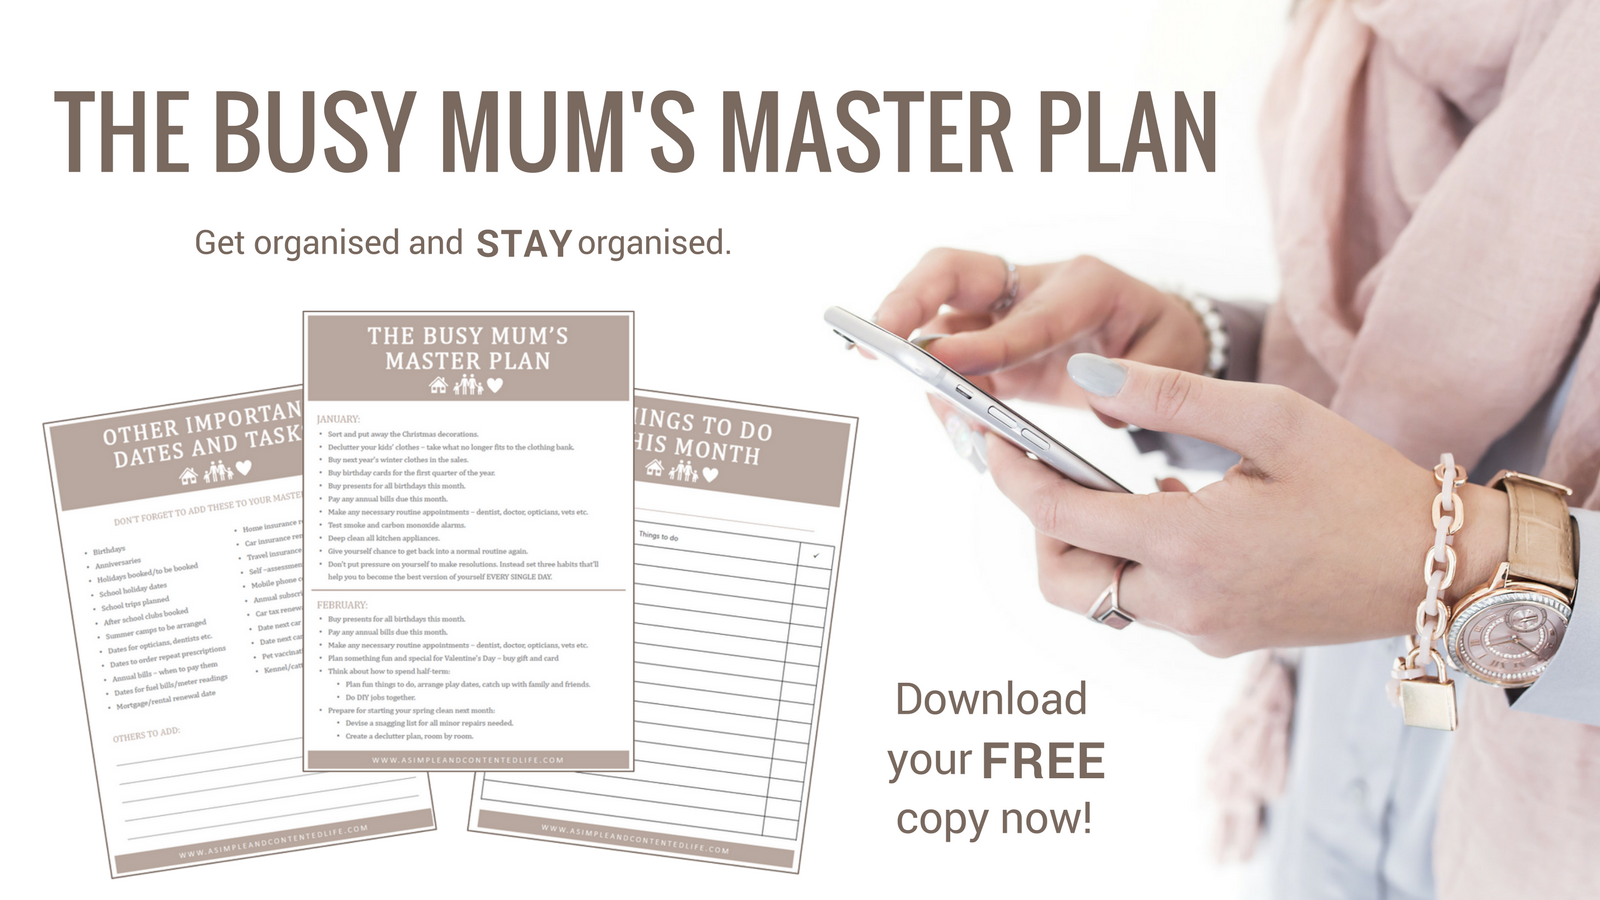 Busy Mum's Master Plan